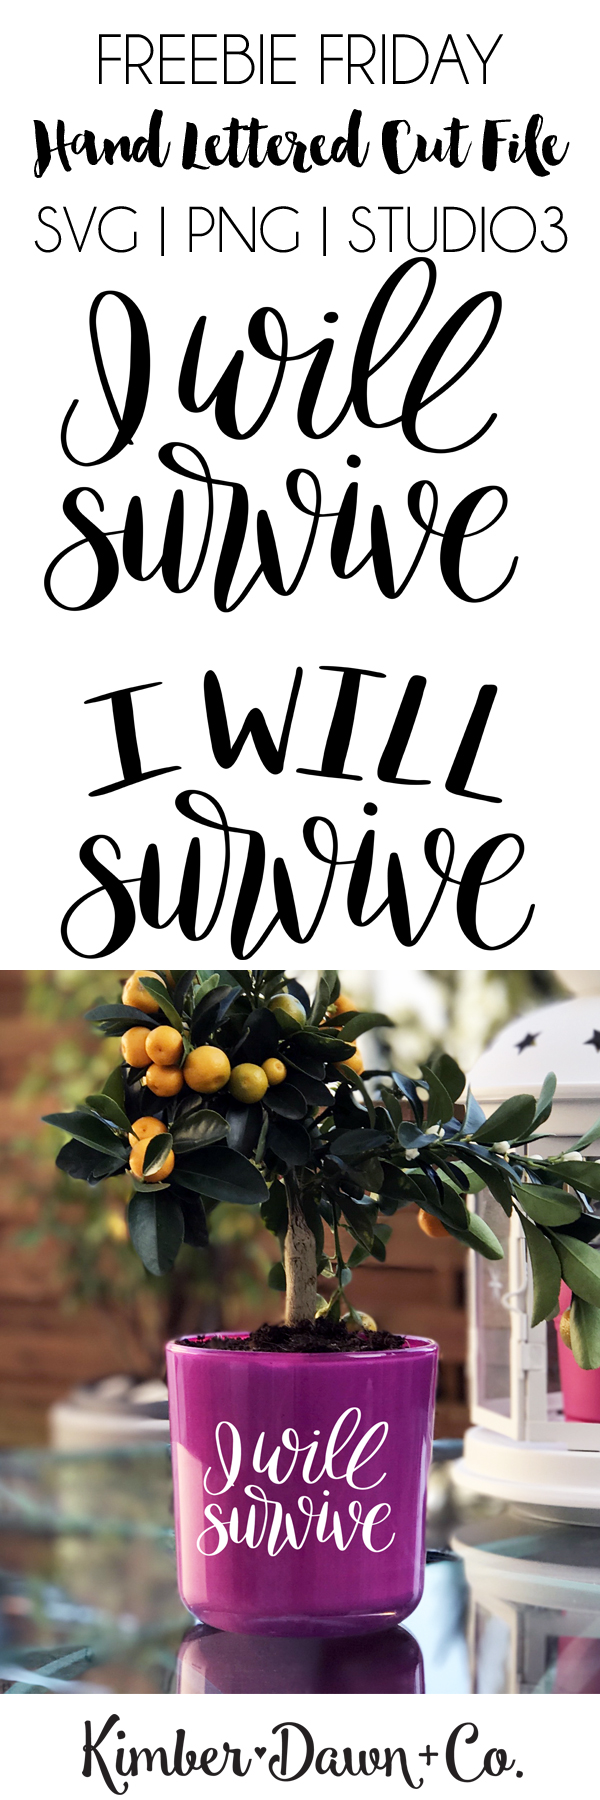 Hand Lettered I Will Survive Free SVG Cut File   KimberDawnCo.com